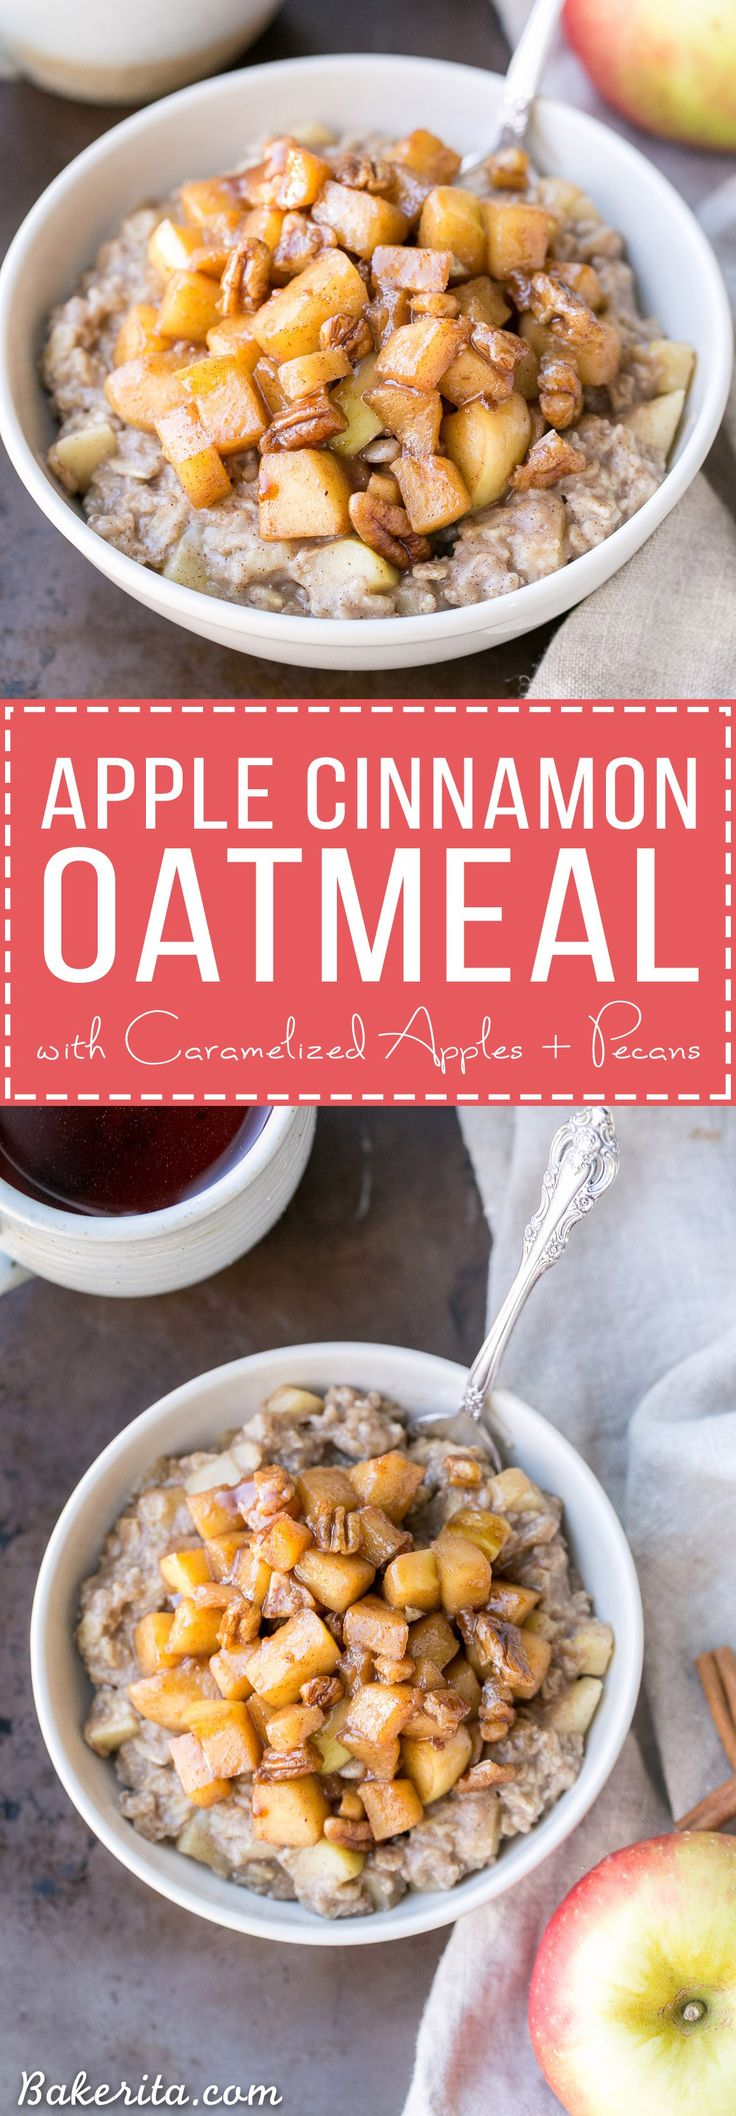 This Apple Cinnamon Oatmeal is topped with caramelized apples and crunchy pecans for an irresistible breakfast that's much more decadent than it looks. This breakfast treat is gluten-free, refined sug (Fitness Recipes Breakfast)